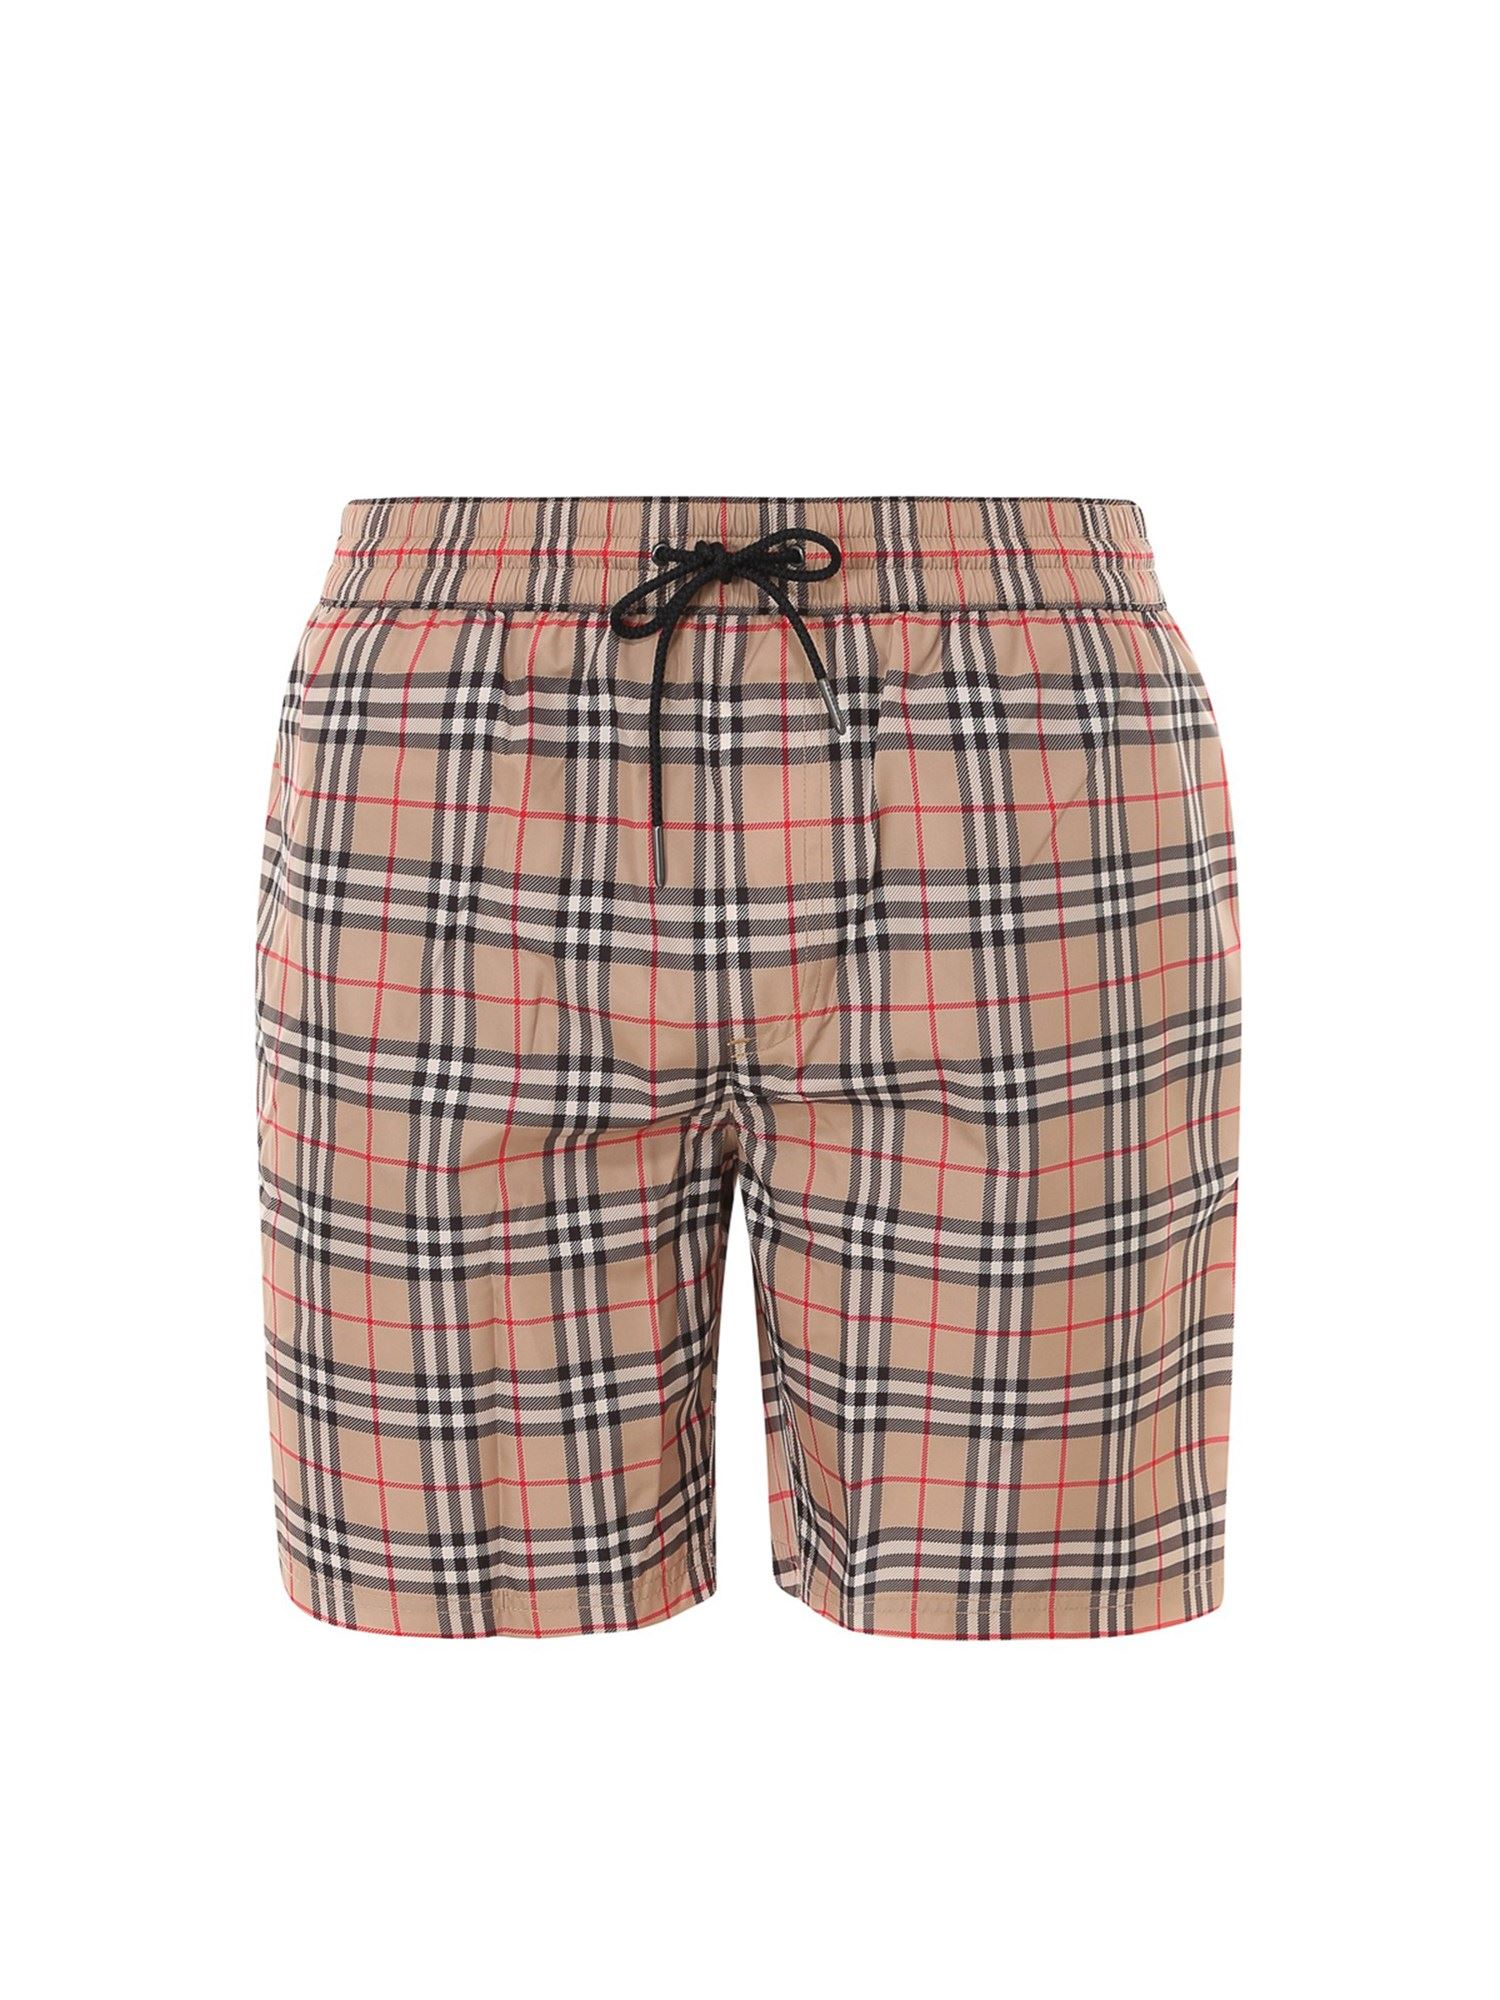 Burberry VINTAGE CHECK SWIM TRUNKS IN BIEGE